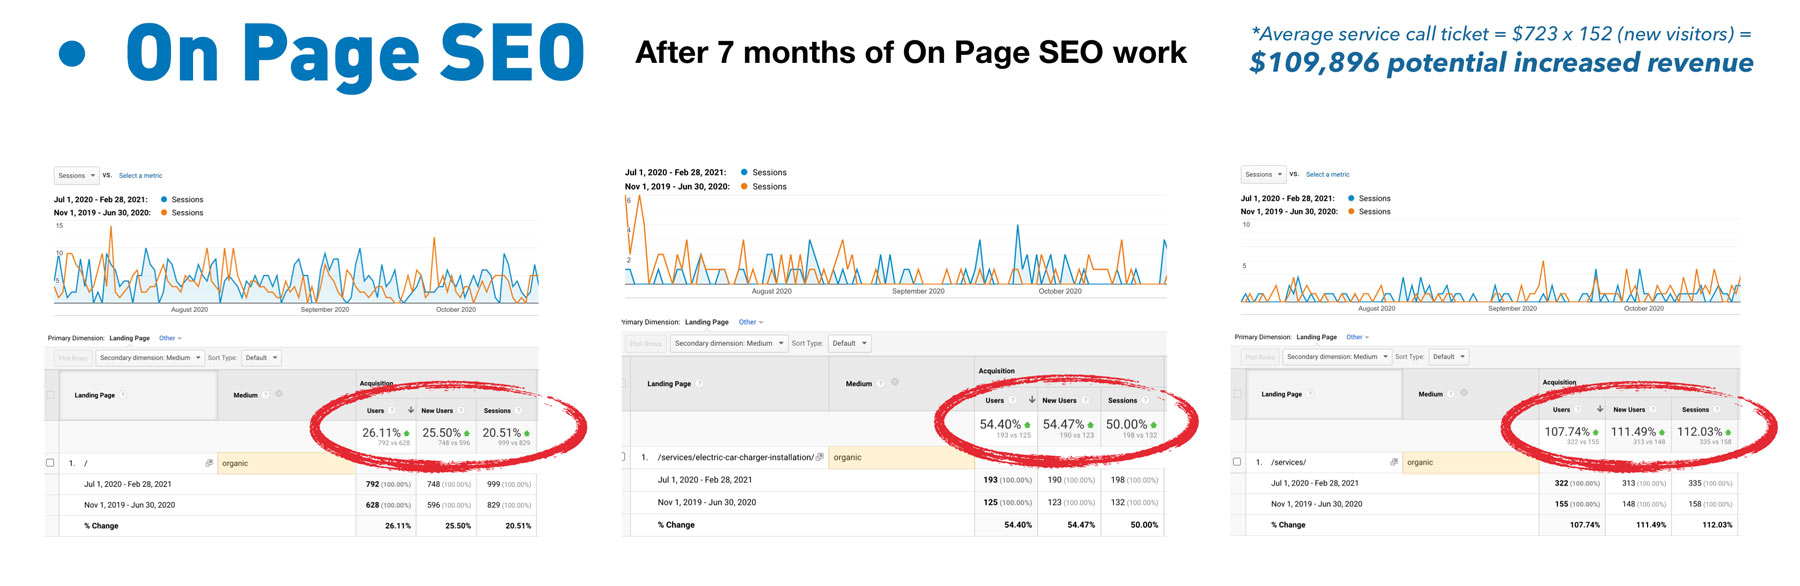 on page SEO comparison with increases of over 25 percent